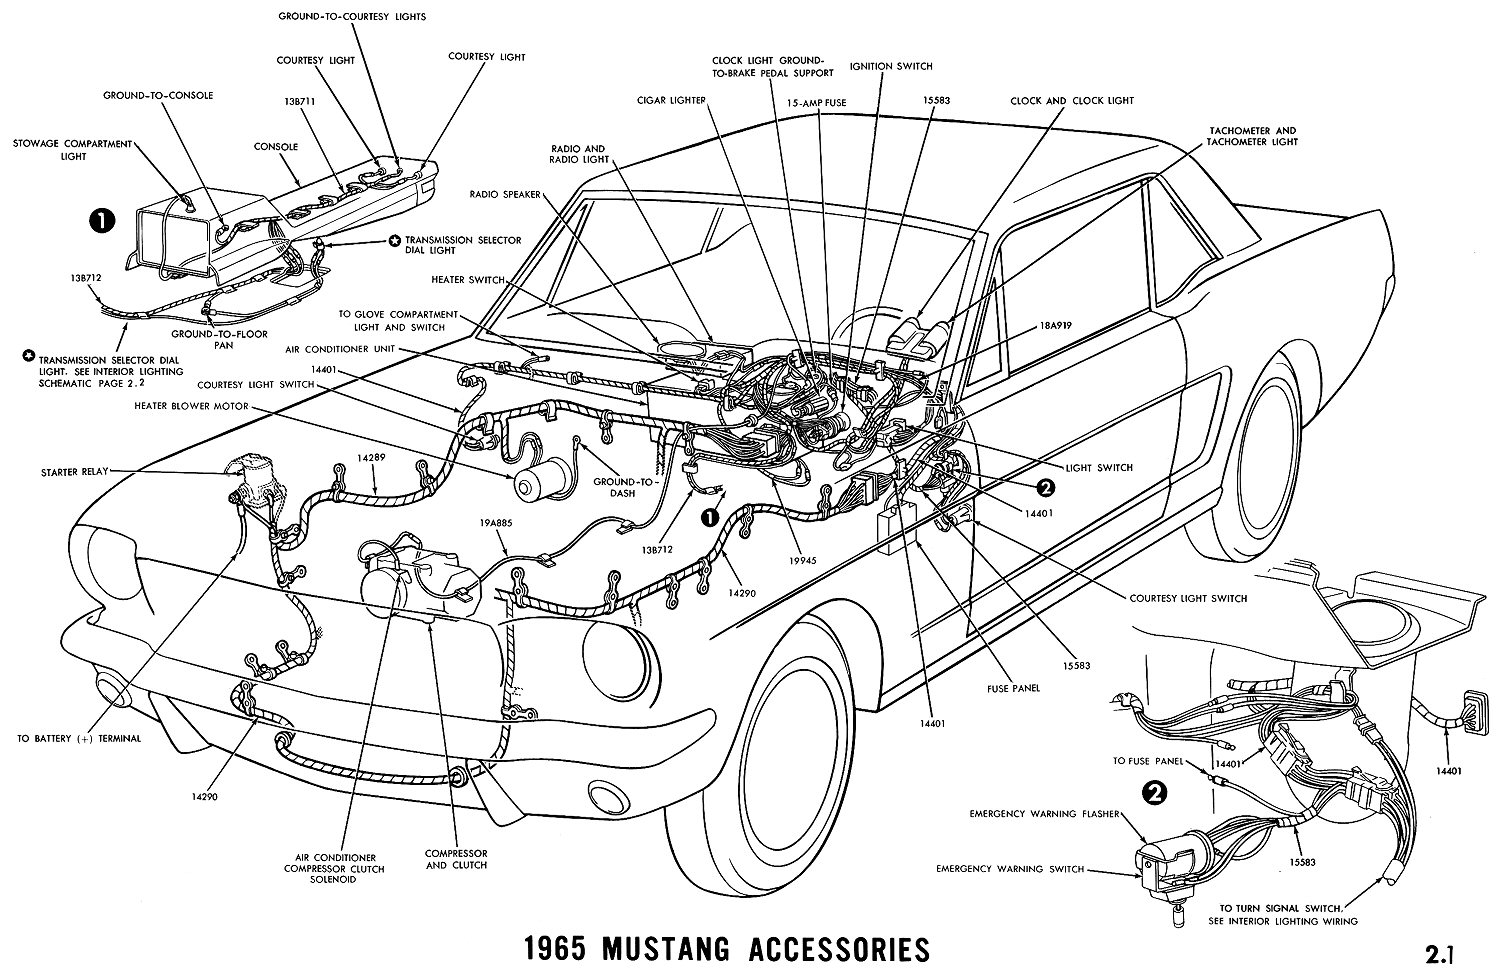 65 mustang accesories 1965 mustang accesories diagram 68 mustang fuse box diagram at honlapkeszites.co